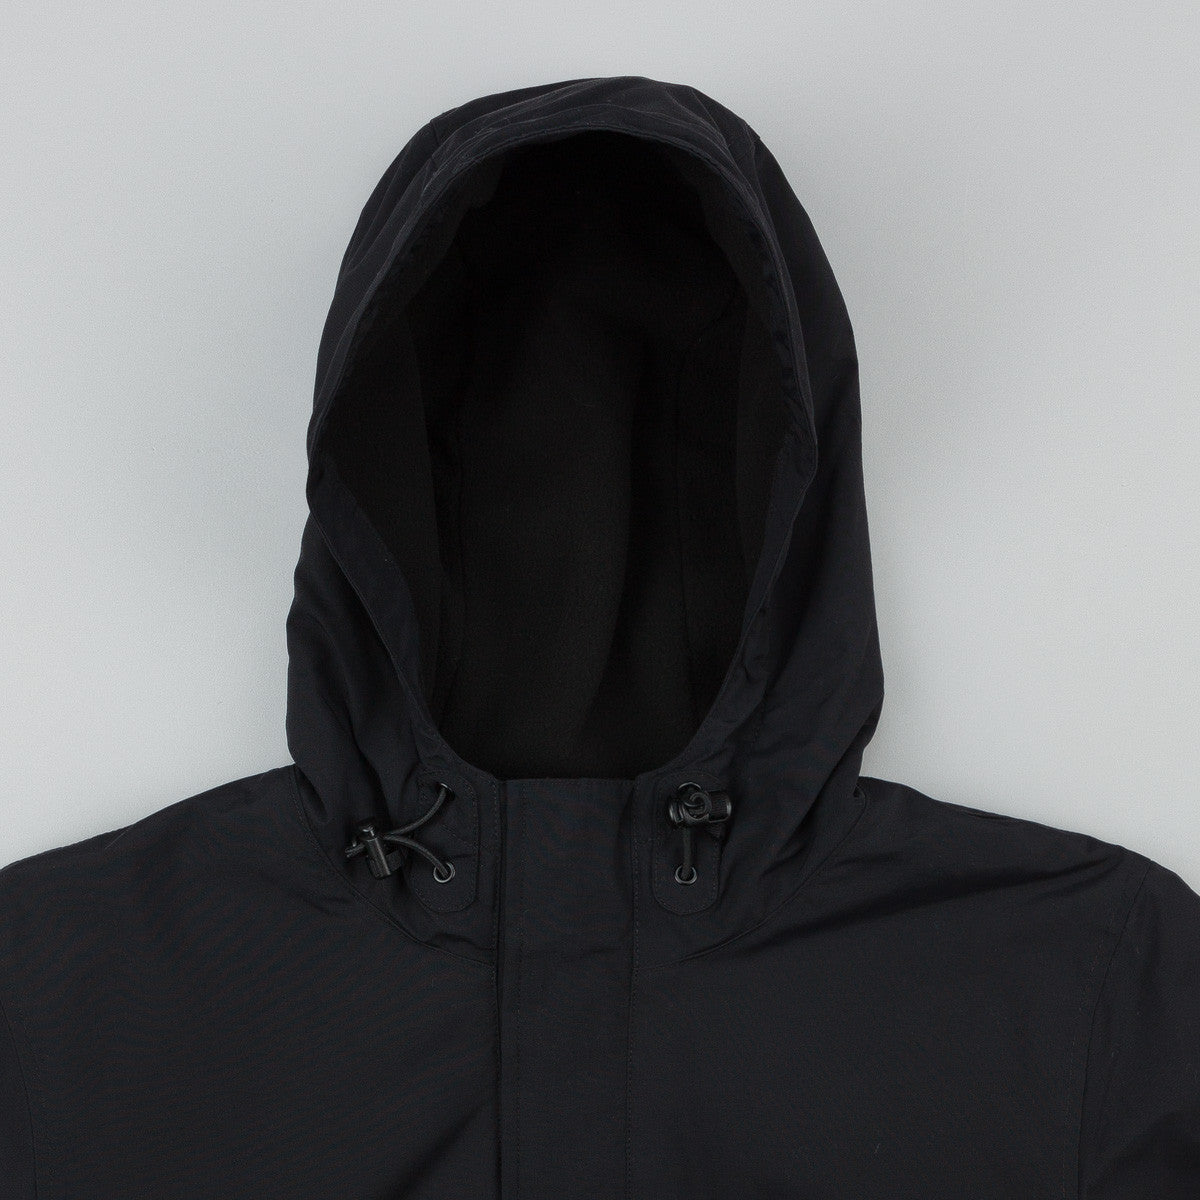 Carhartt Neil Jacket - Black / Black